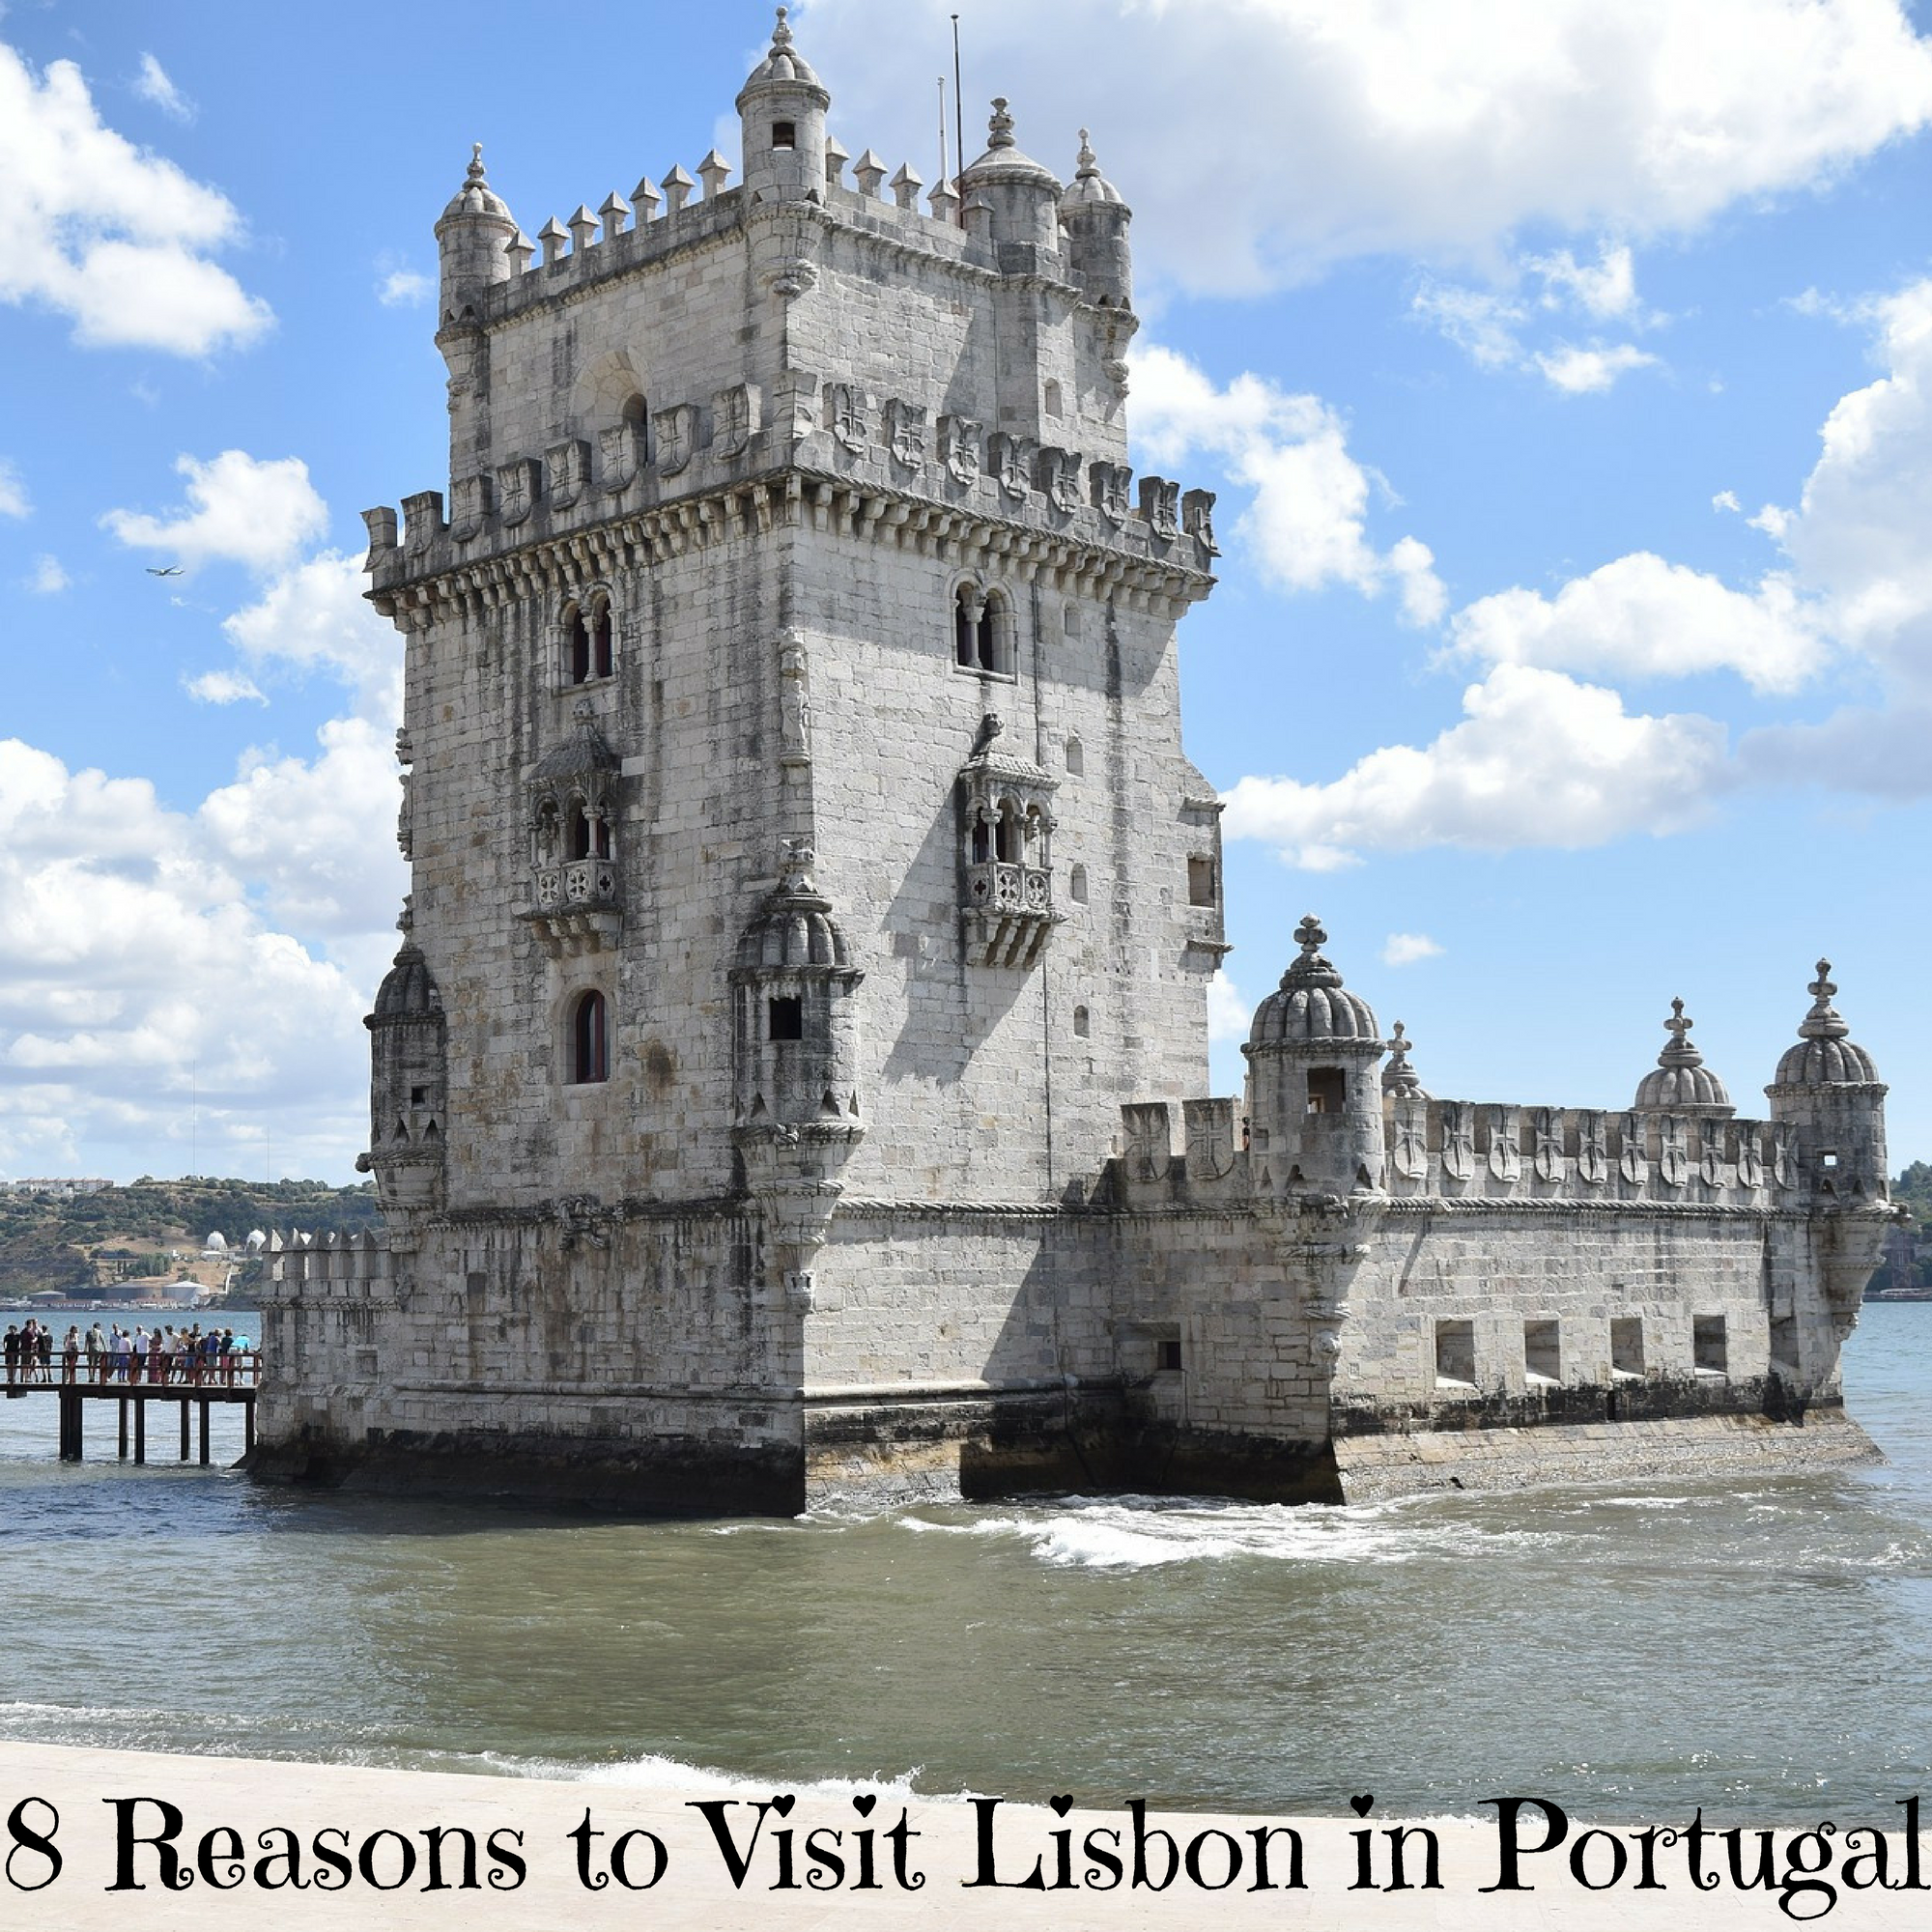 8 Reasons to Visit Lisbon in Portugal